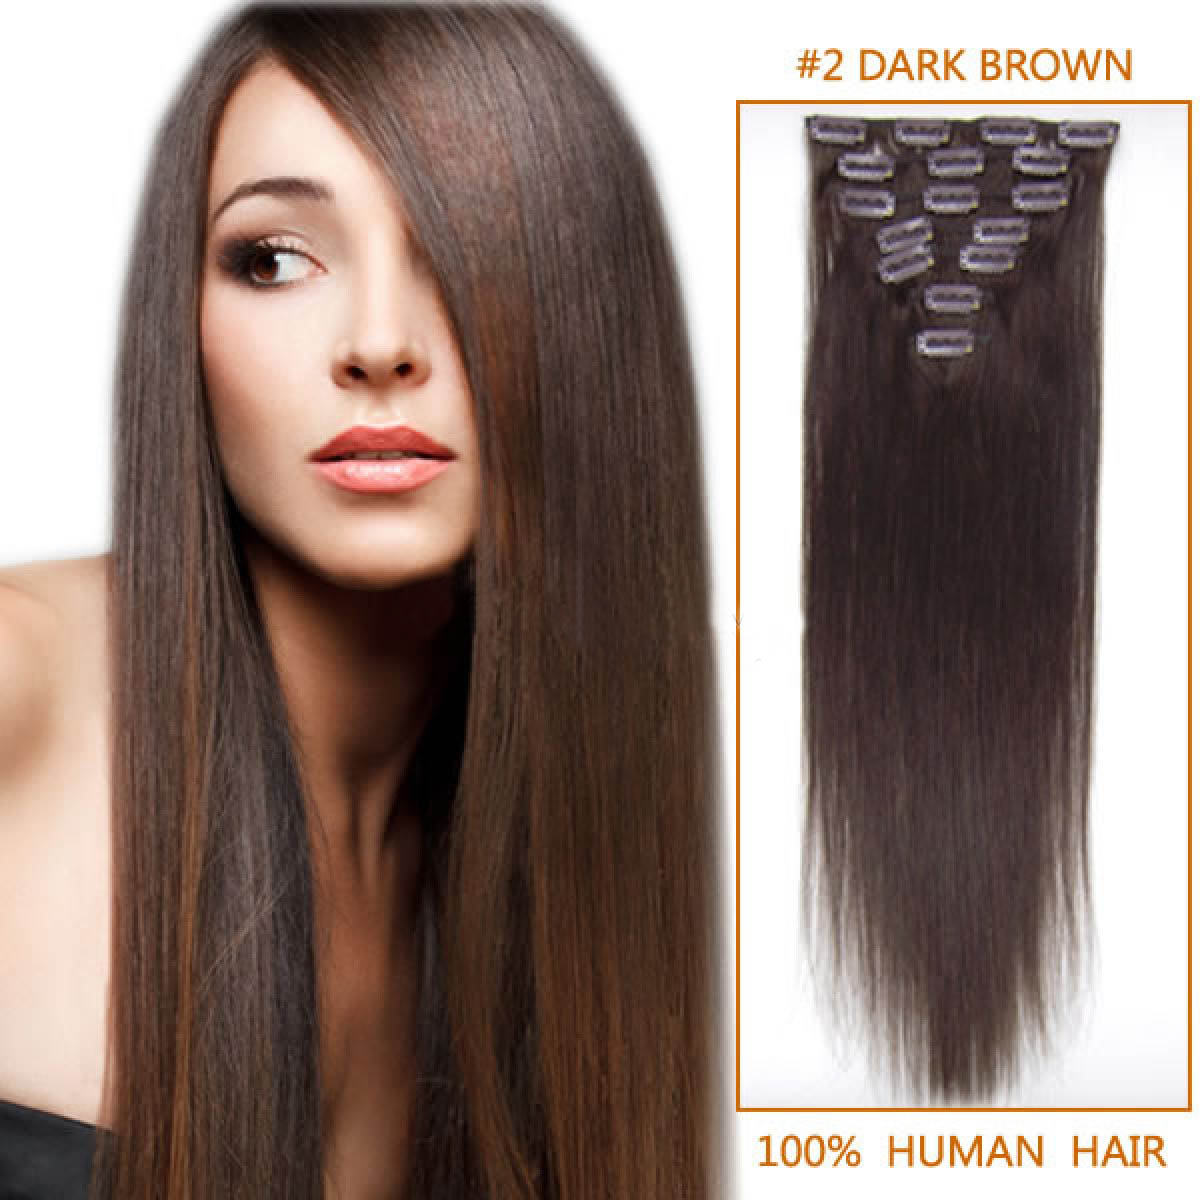 Dark Brown Hair Extensions Clip In 88